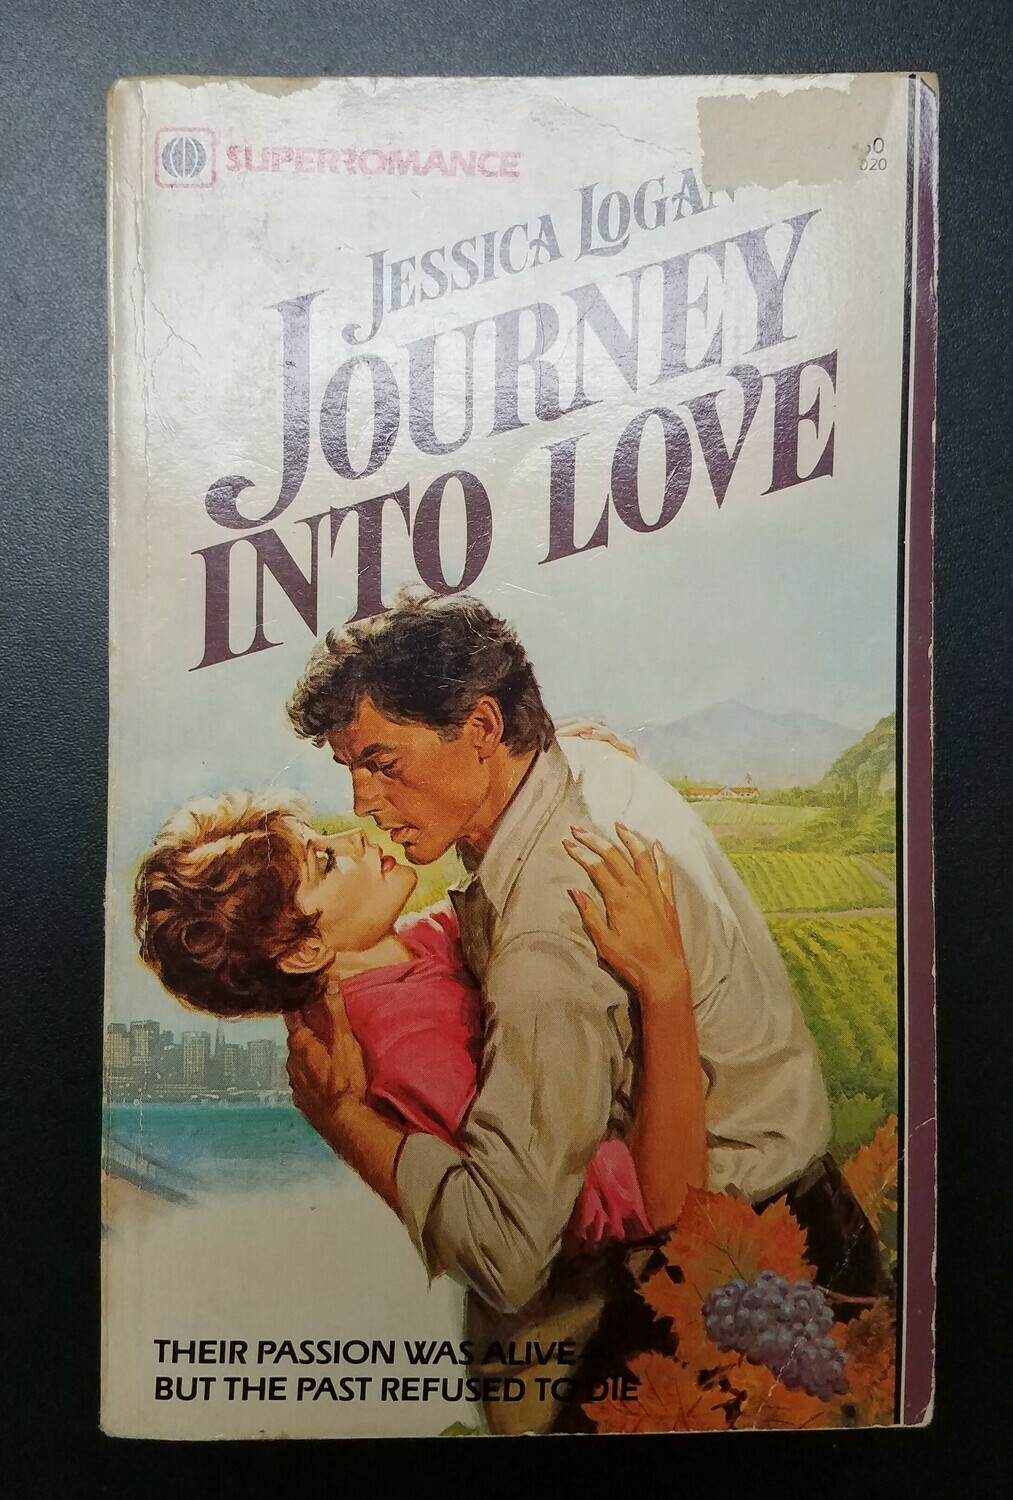 Journey into Love by Jessica Logan